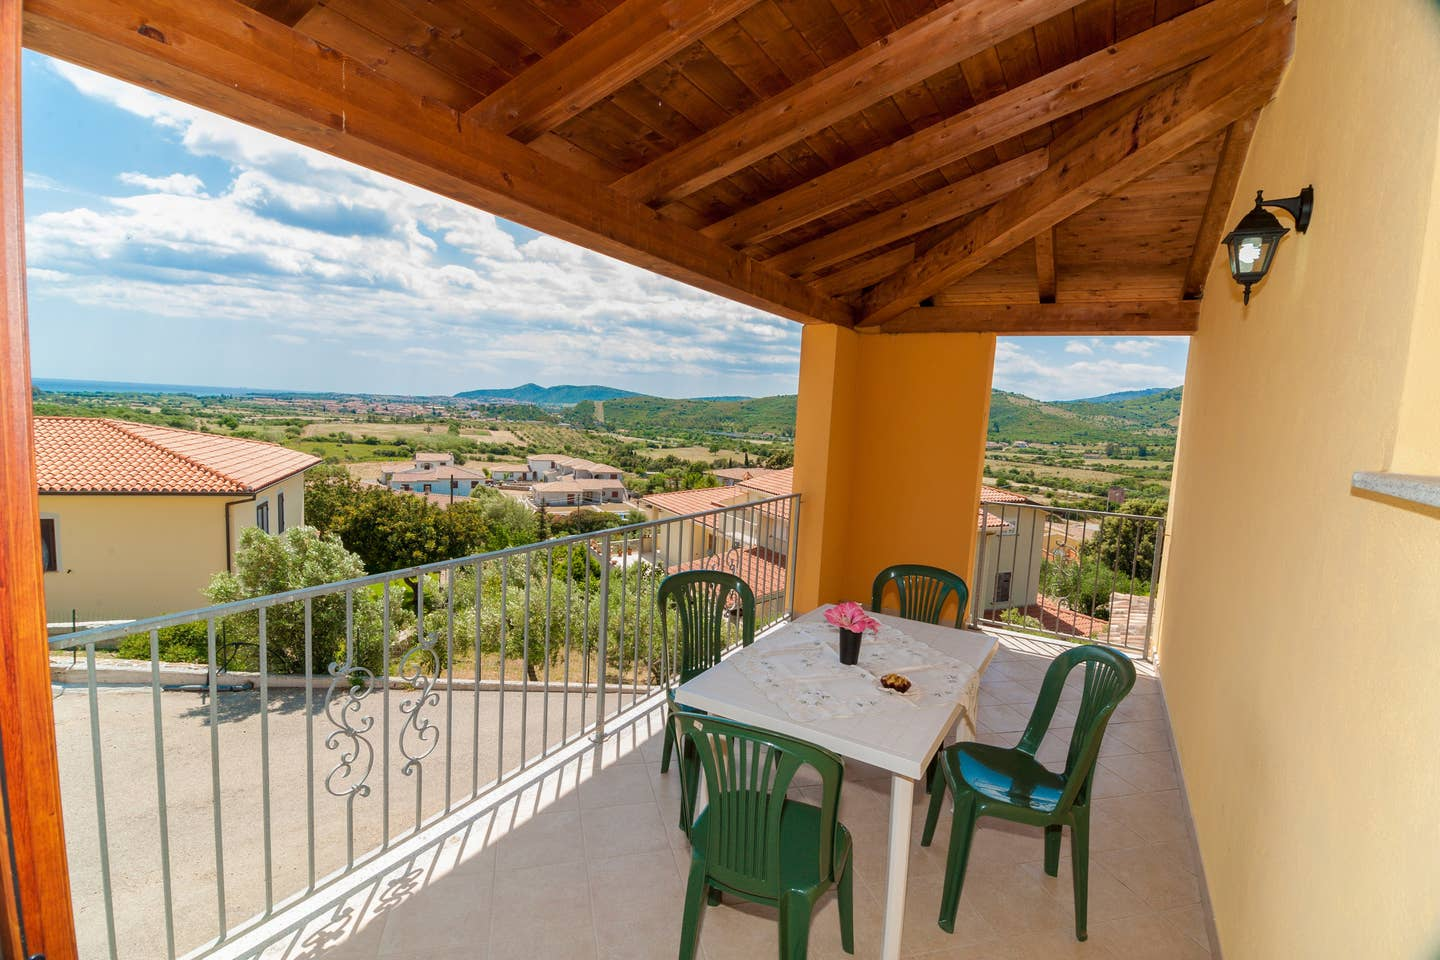 Apartment Bilocale Corte di Gallura 9 photo 18205594